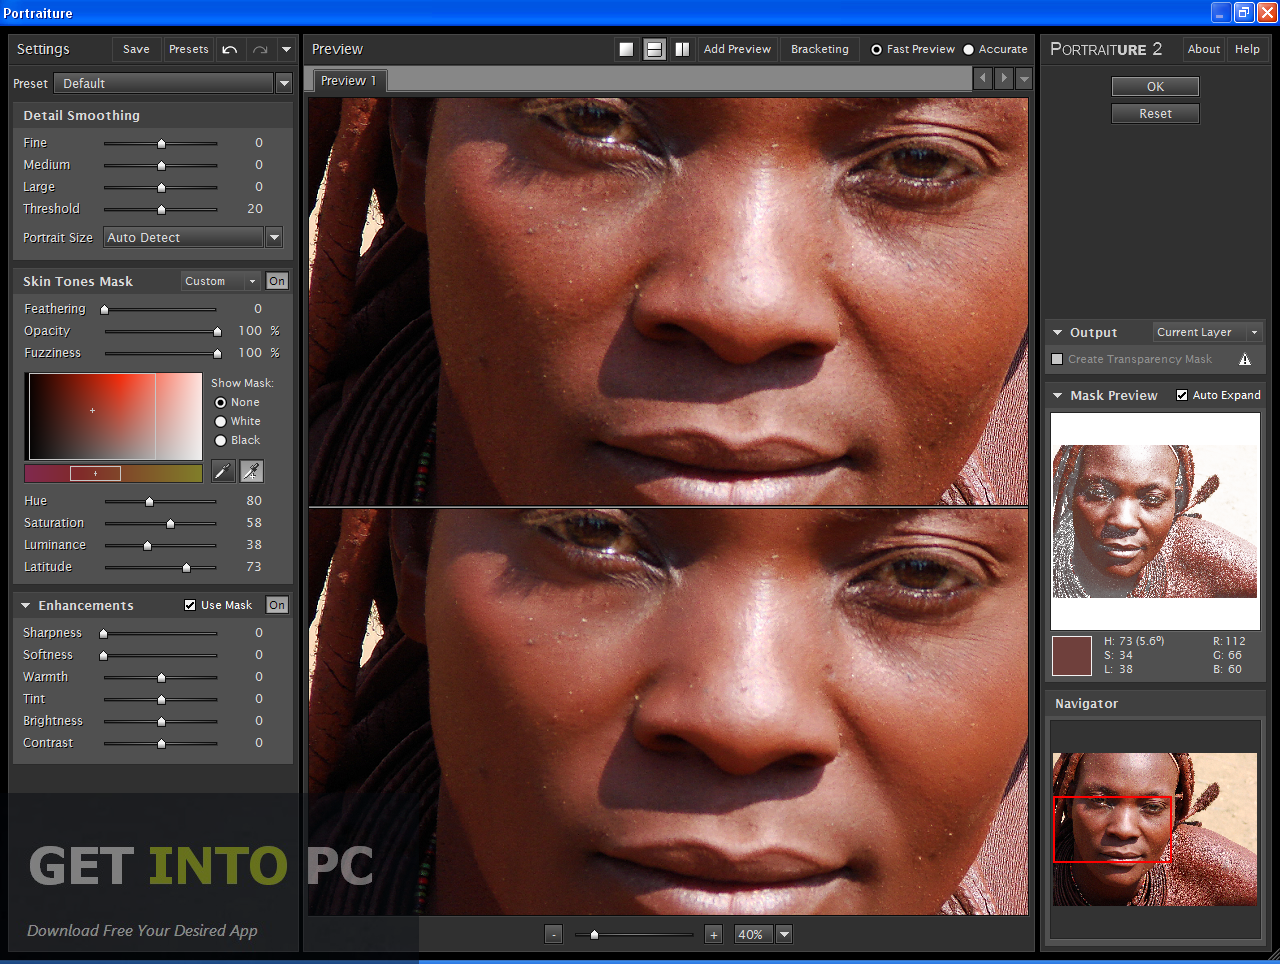 imagenomic portraiture v2.3.4 serial key